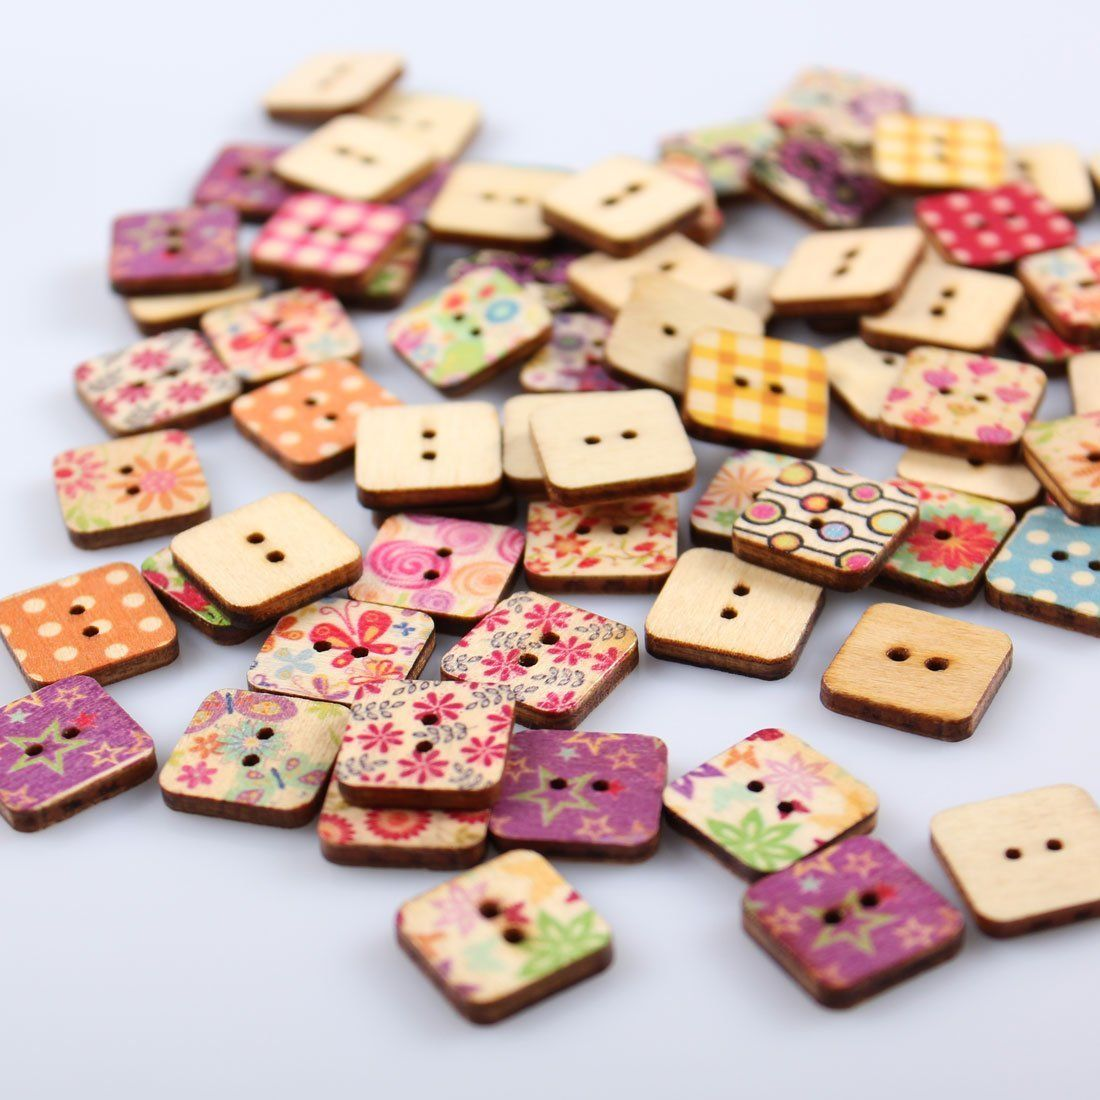 30pcs Mixed Wood Elephant 2 Hole Buttons Embellishment for DIY Sewing Craft